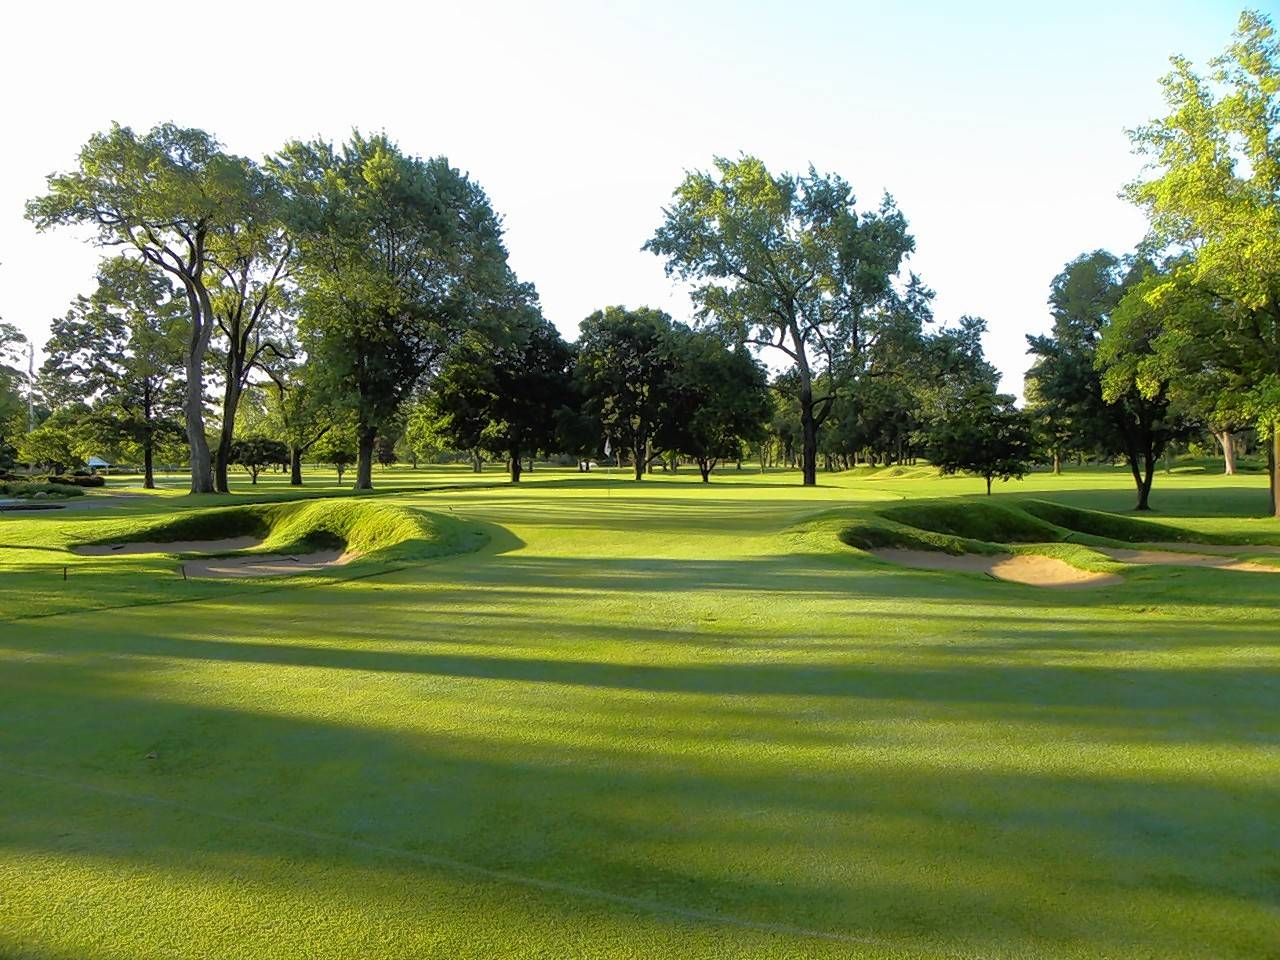 Ravisloe Golf Club has been a Chicagoland gem since 1901. It was opened to the public in 2009.